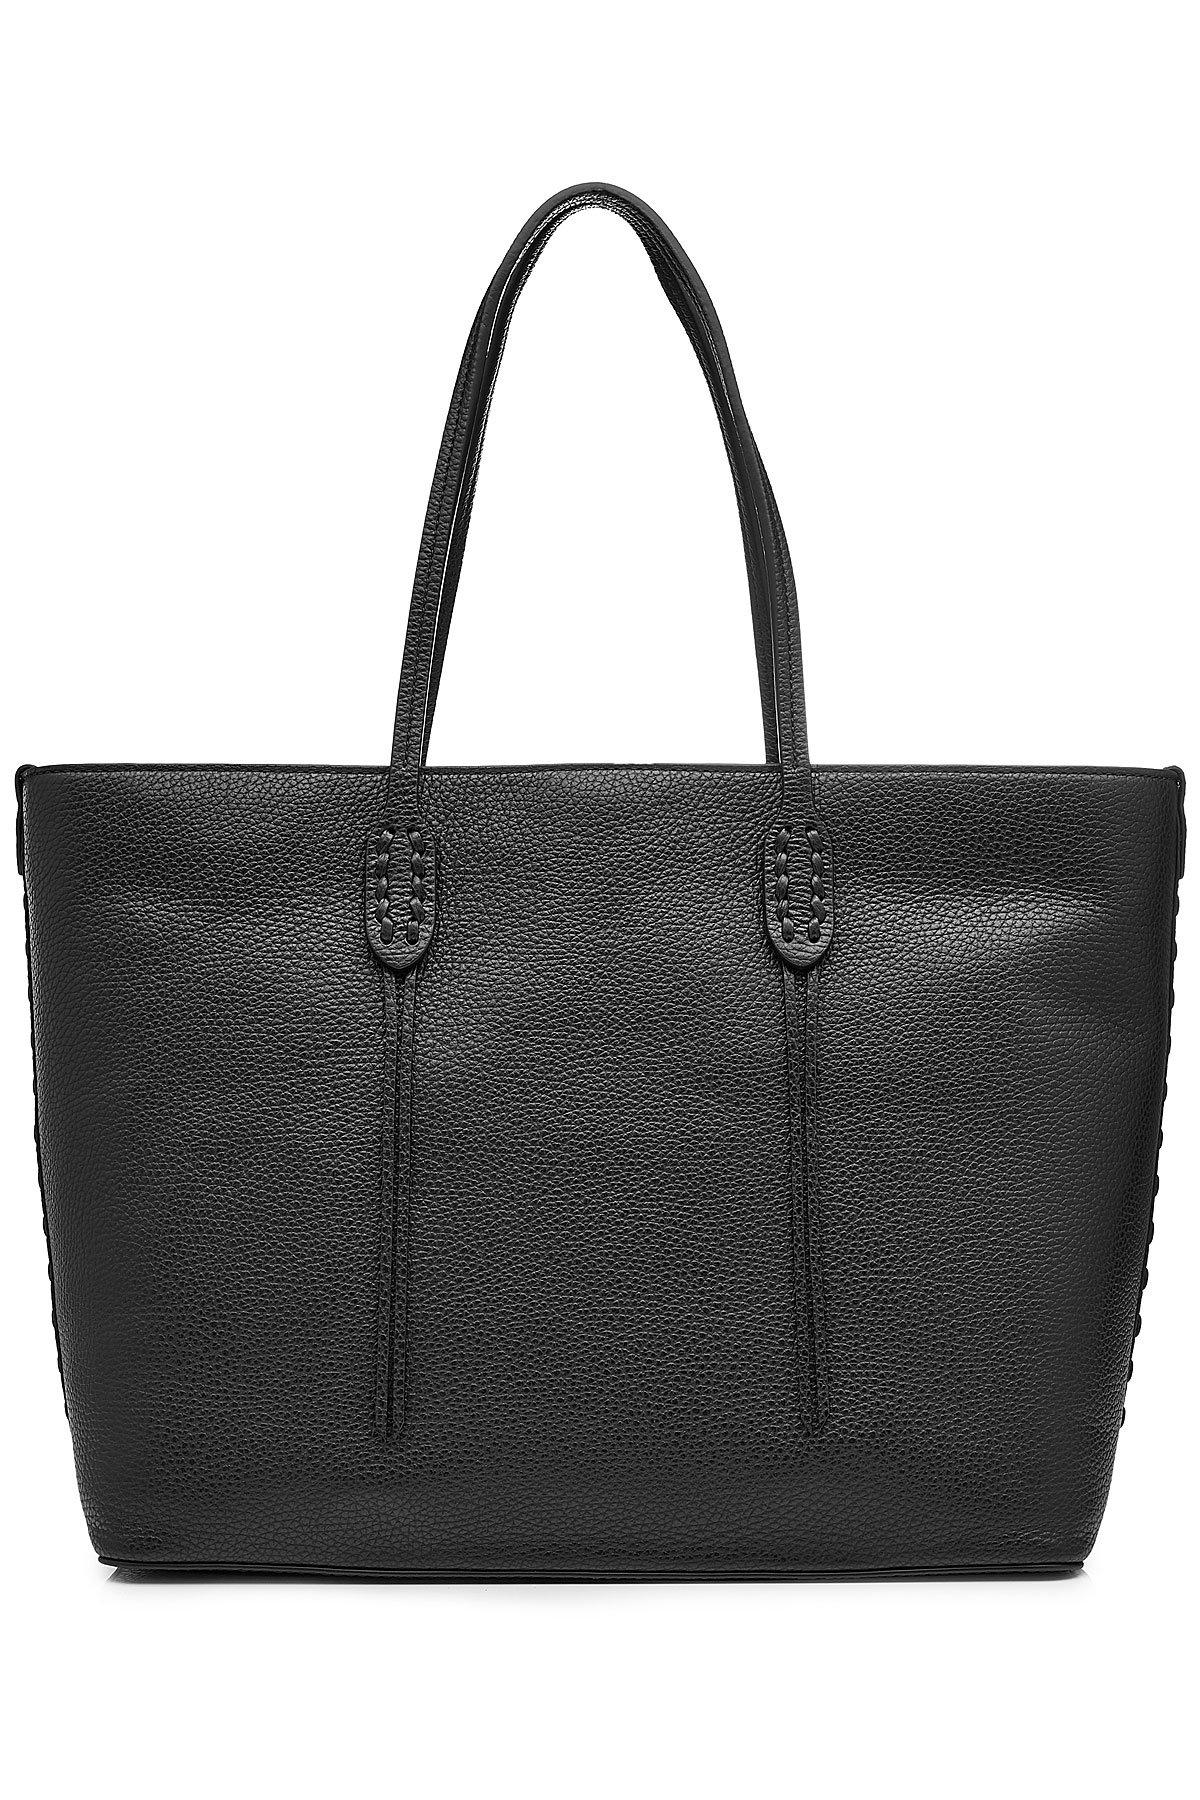 Polo Ralph Lauren Leather Tote In Black